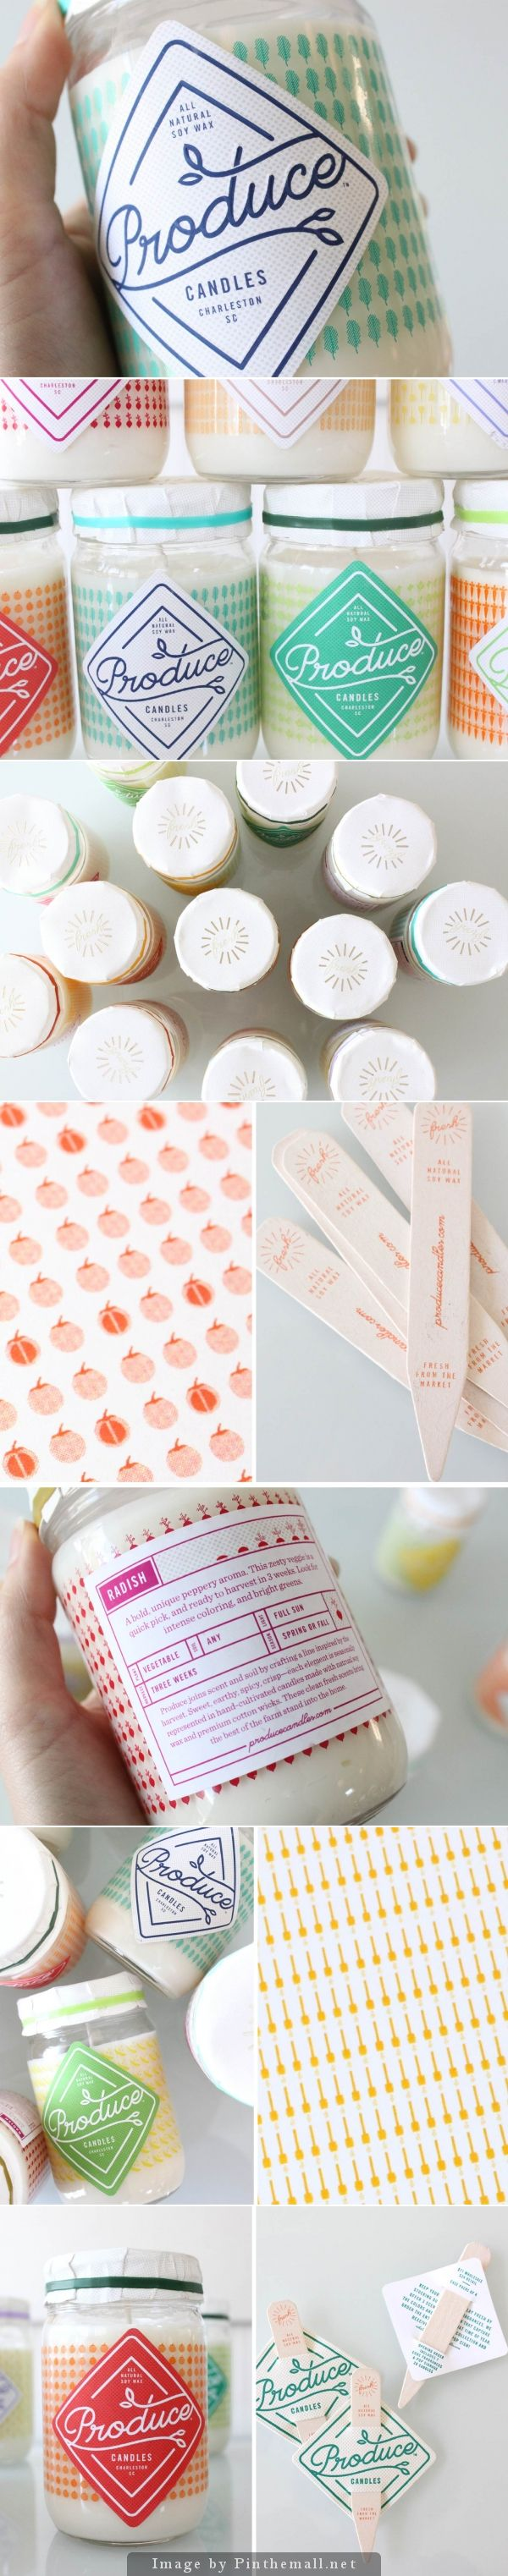 Produce candles designed by Stitch Design Co. #packaging #design